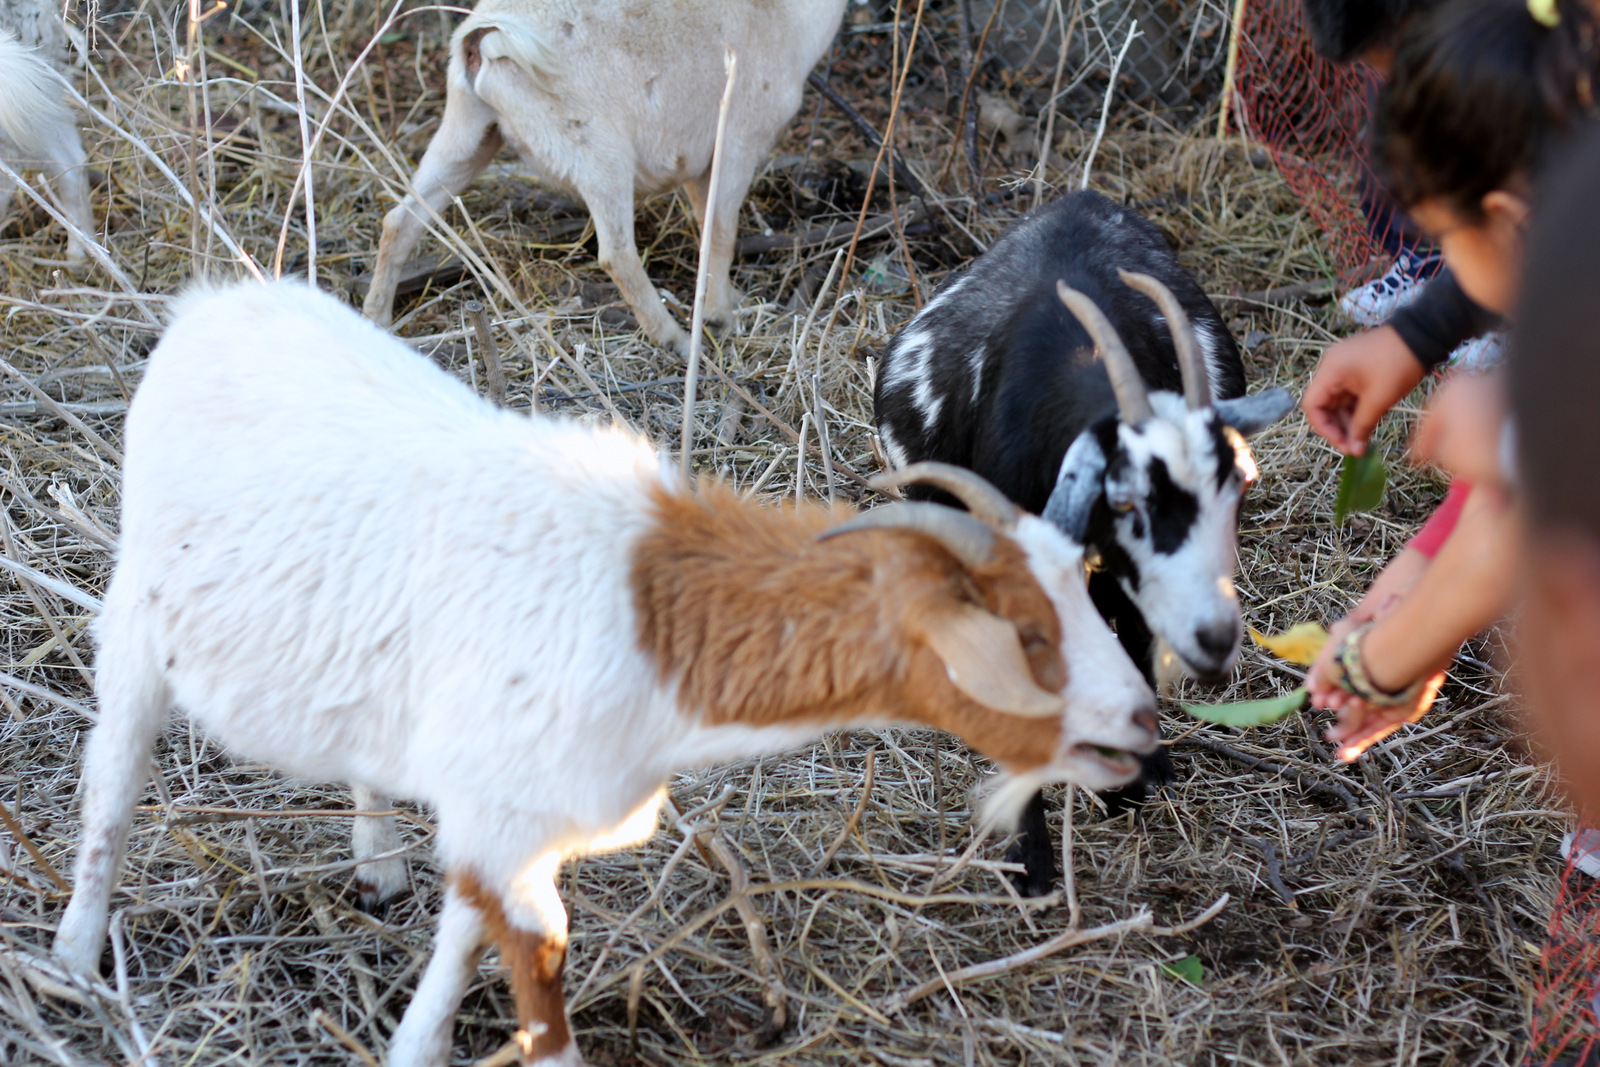 To Curb Illegal Dumping, Richmond Turns to Goats